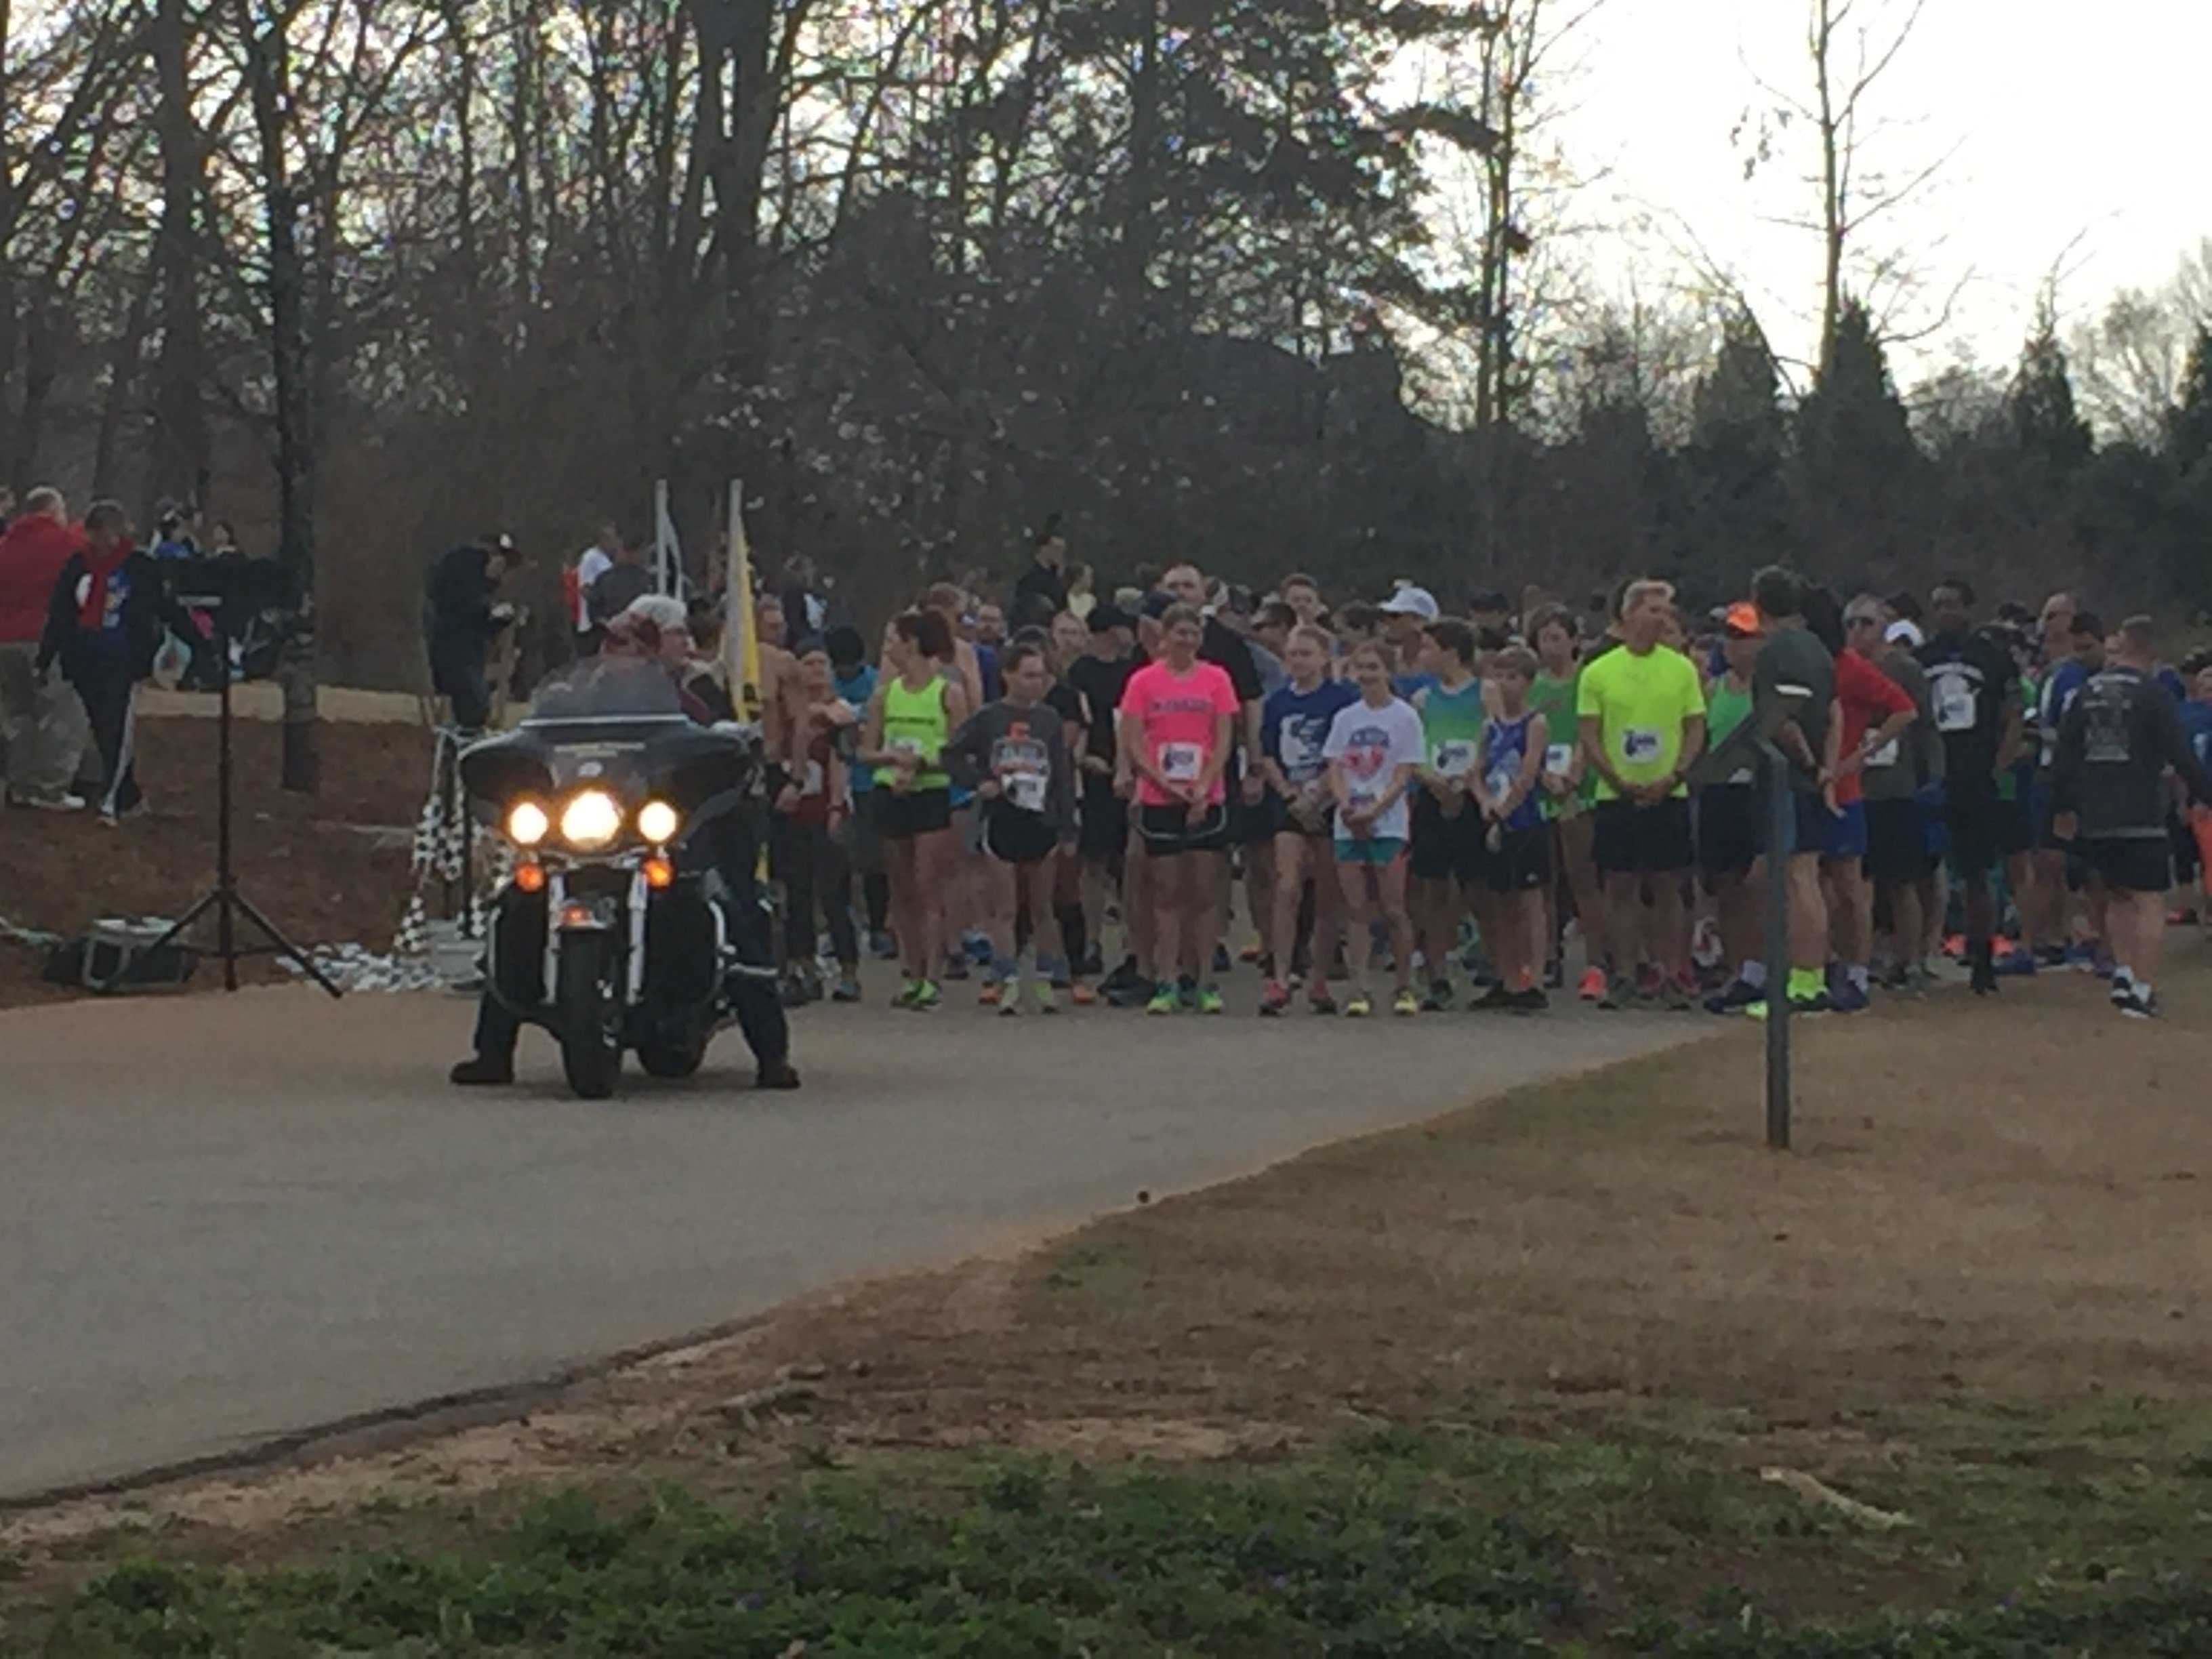 Runners line up for the start of A Hero's 5K (FOX Carolina/ March 25, 2017)